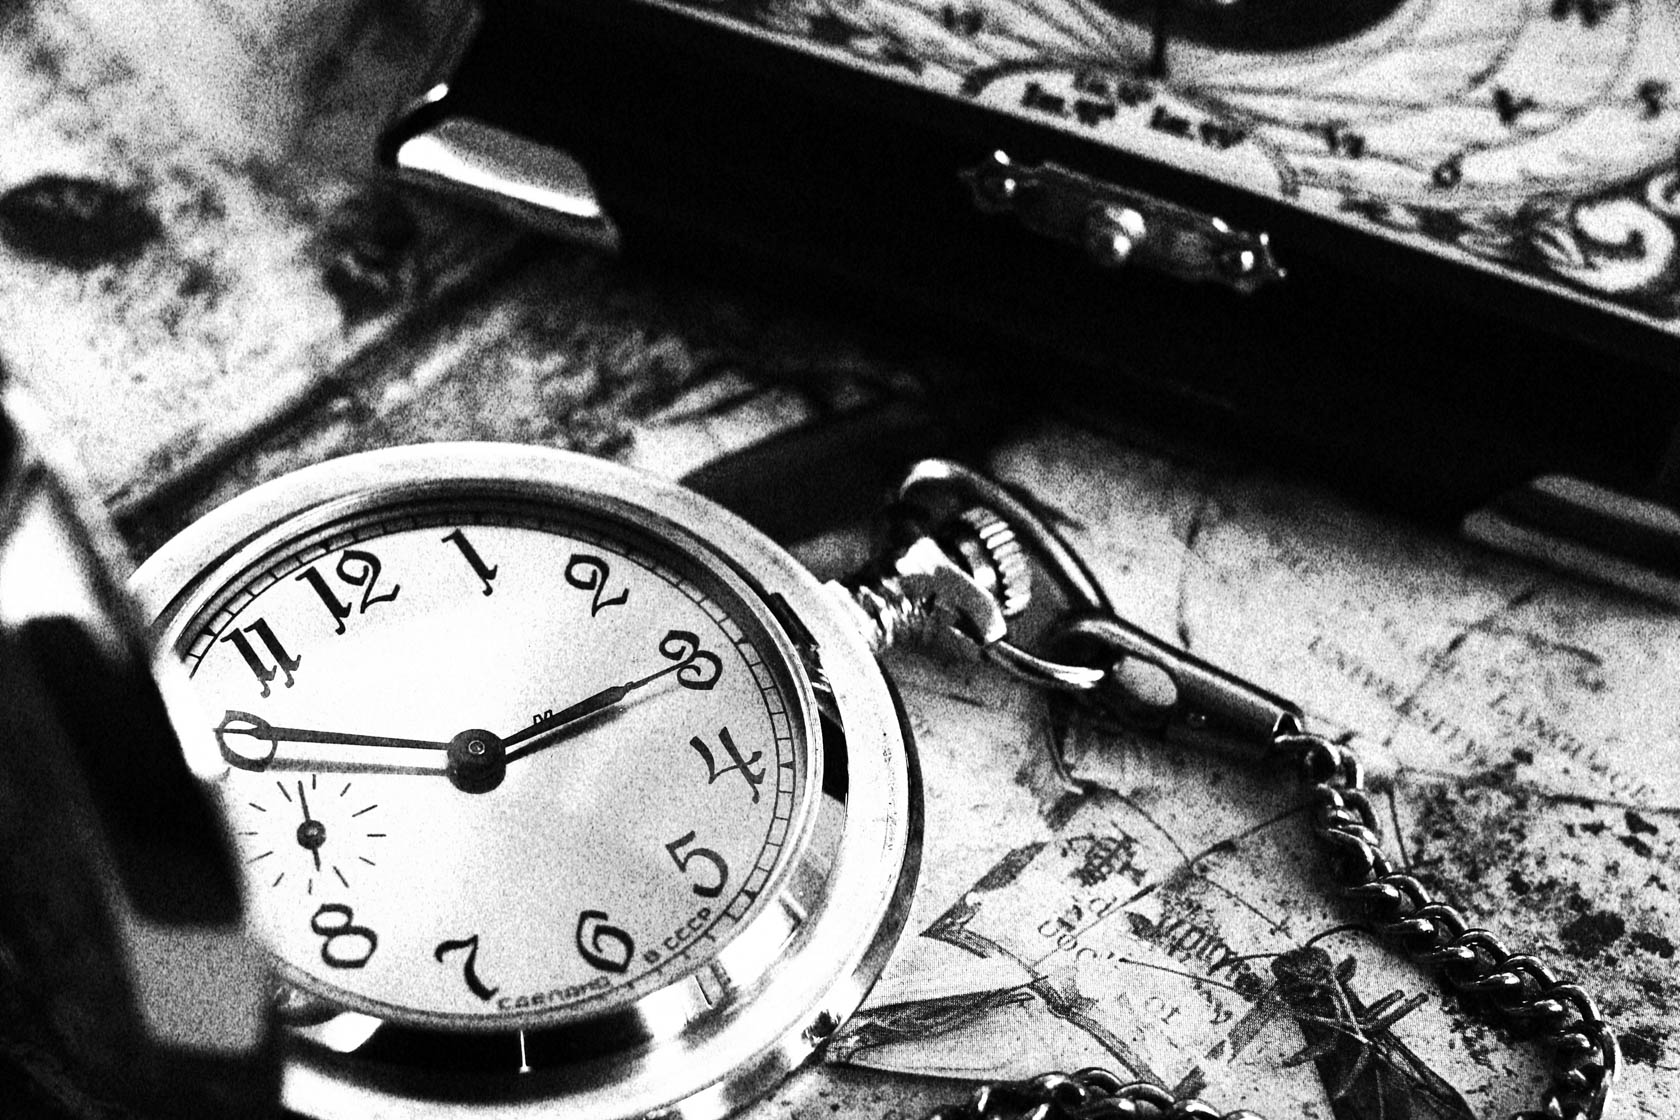 Clockwatch taken with Canon EOS 700D DSLR camera